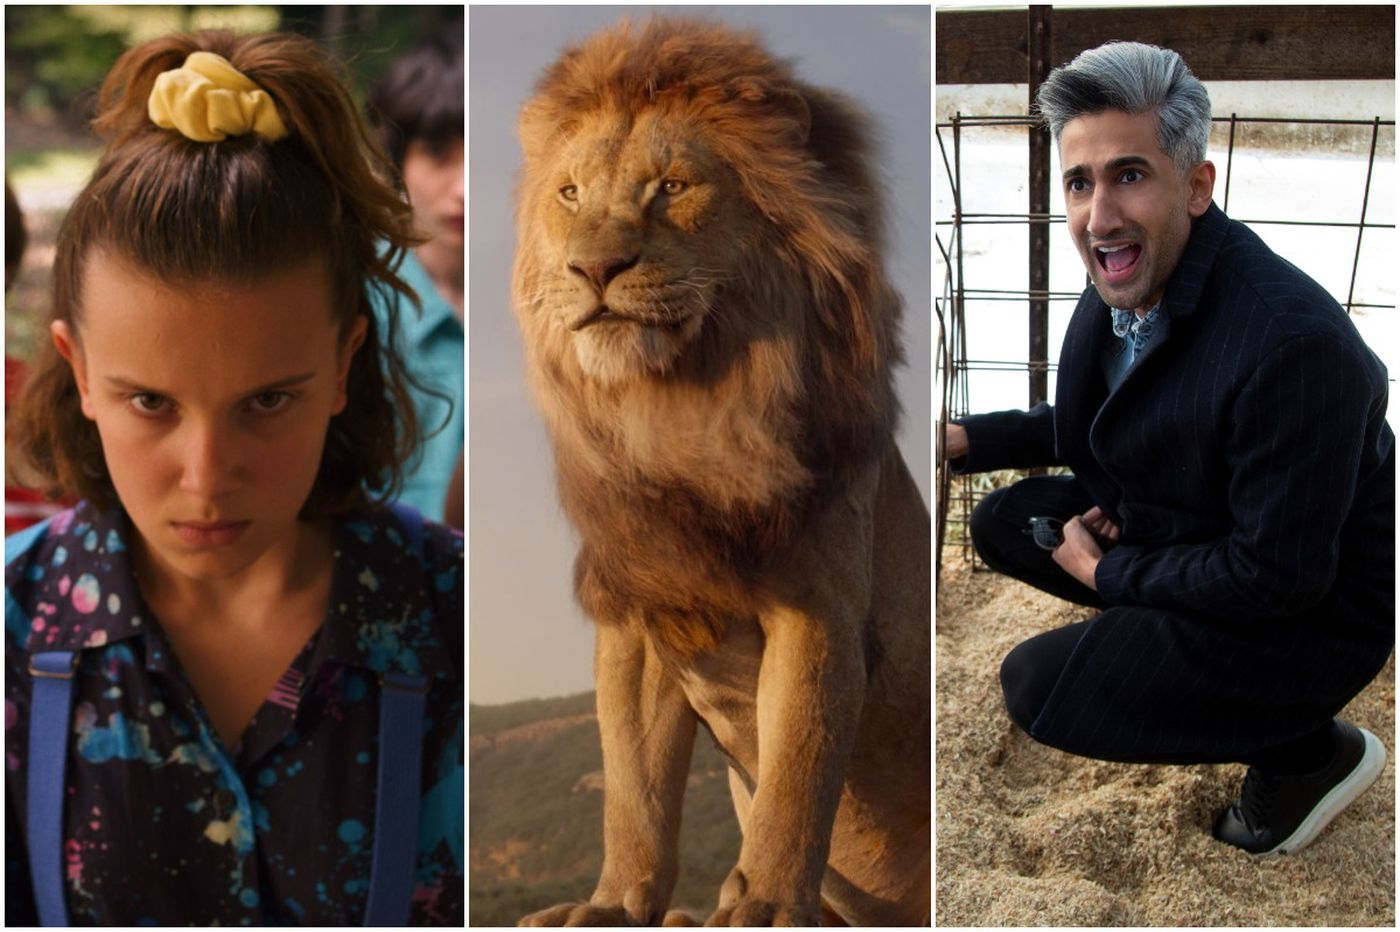 What to watch during Philly's heat wave: 'The Lion King,' 'Veronica Mars,' 'Queer Eye,' and more